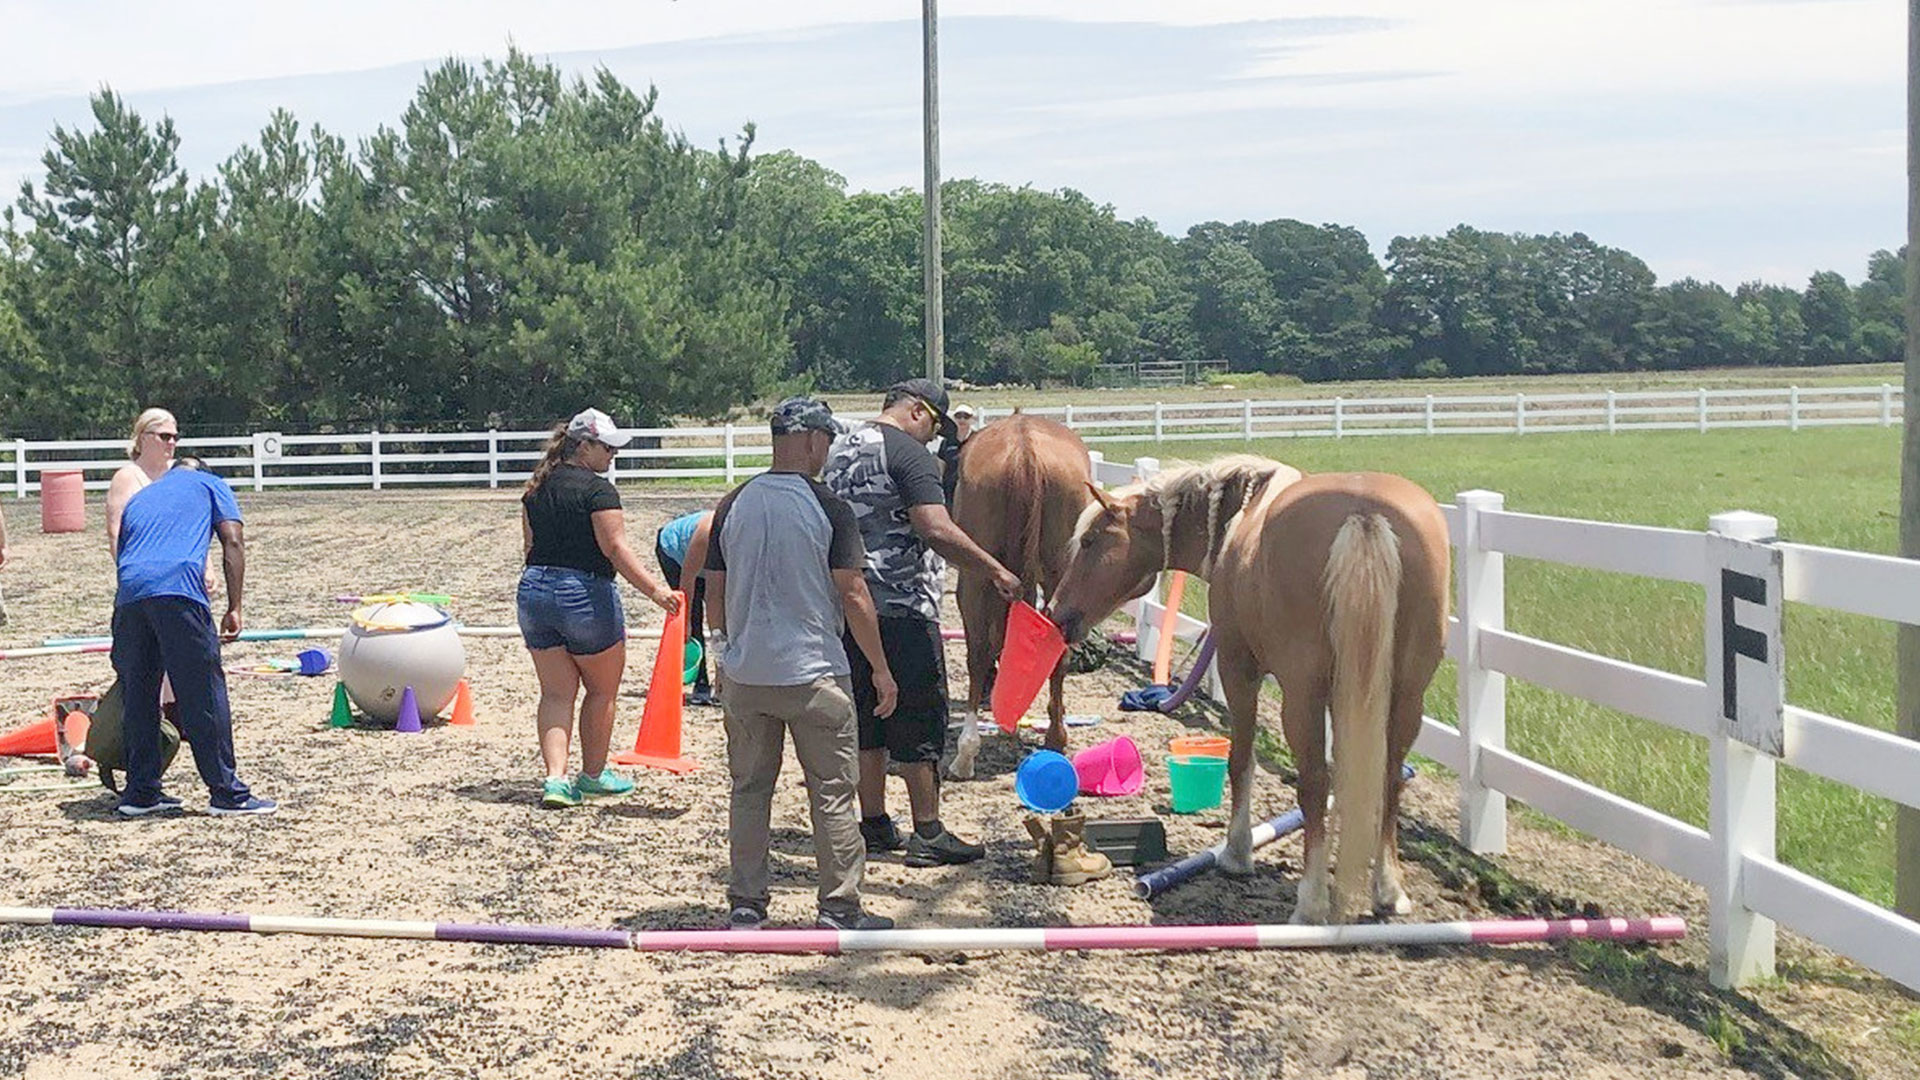 Wounded Warrior Project Equine Therapy